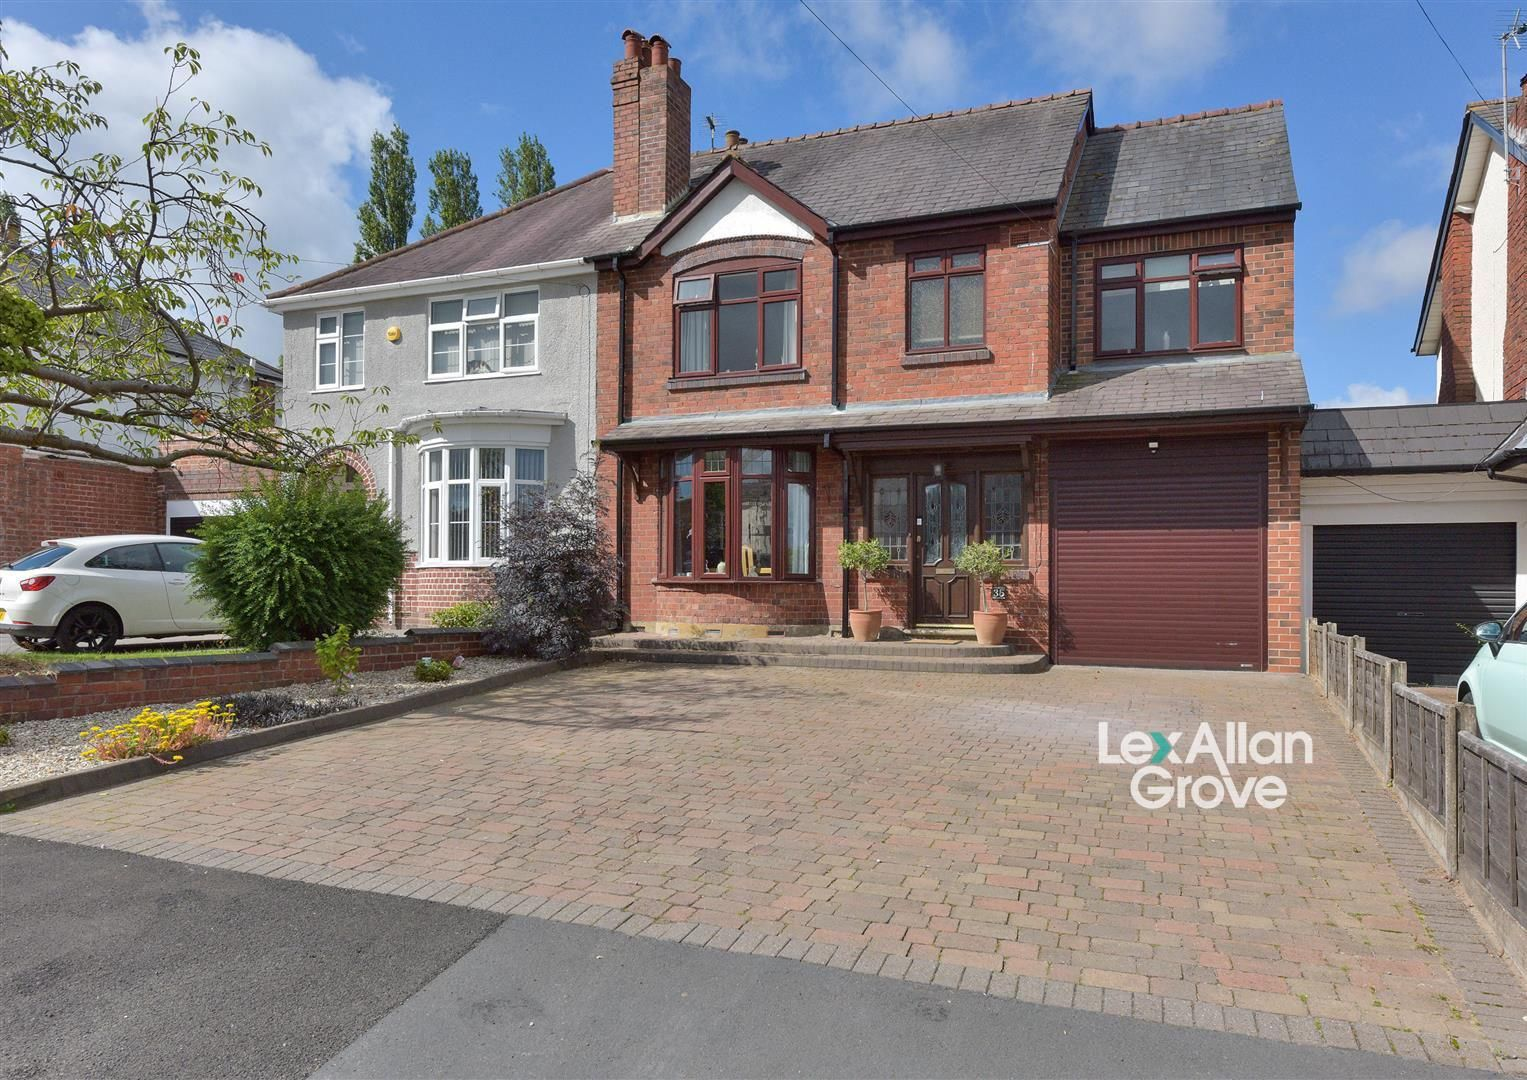 5 bed semi-detached for sale - Property Image 1